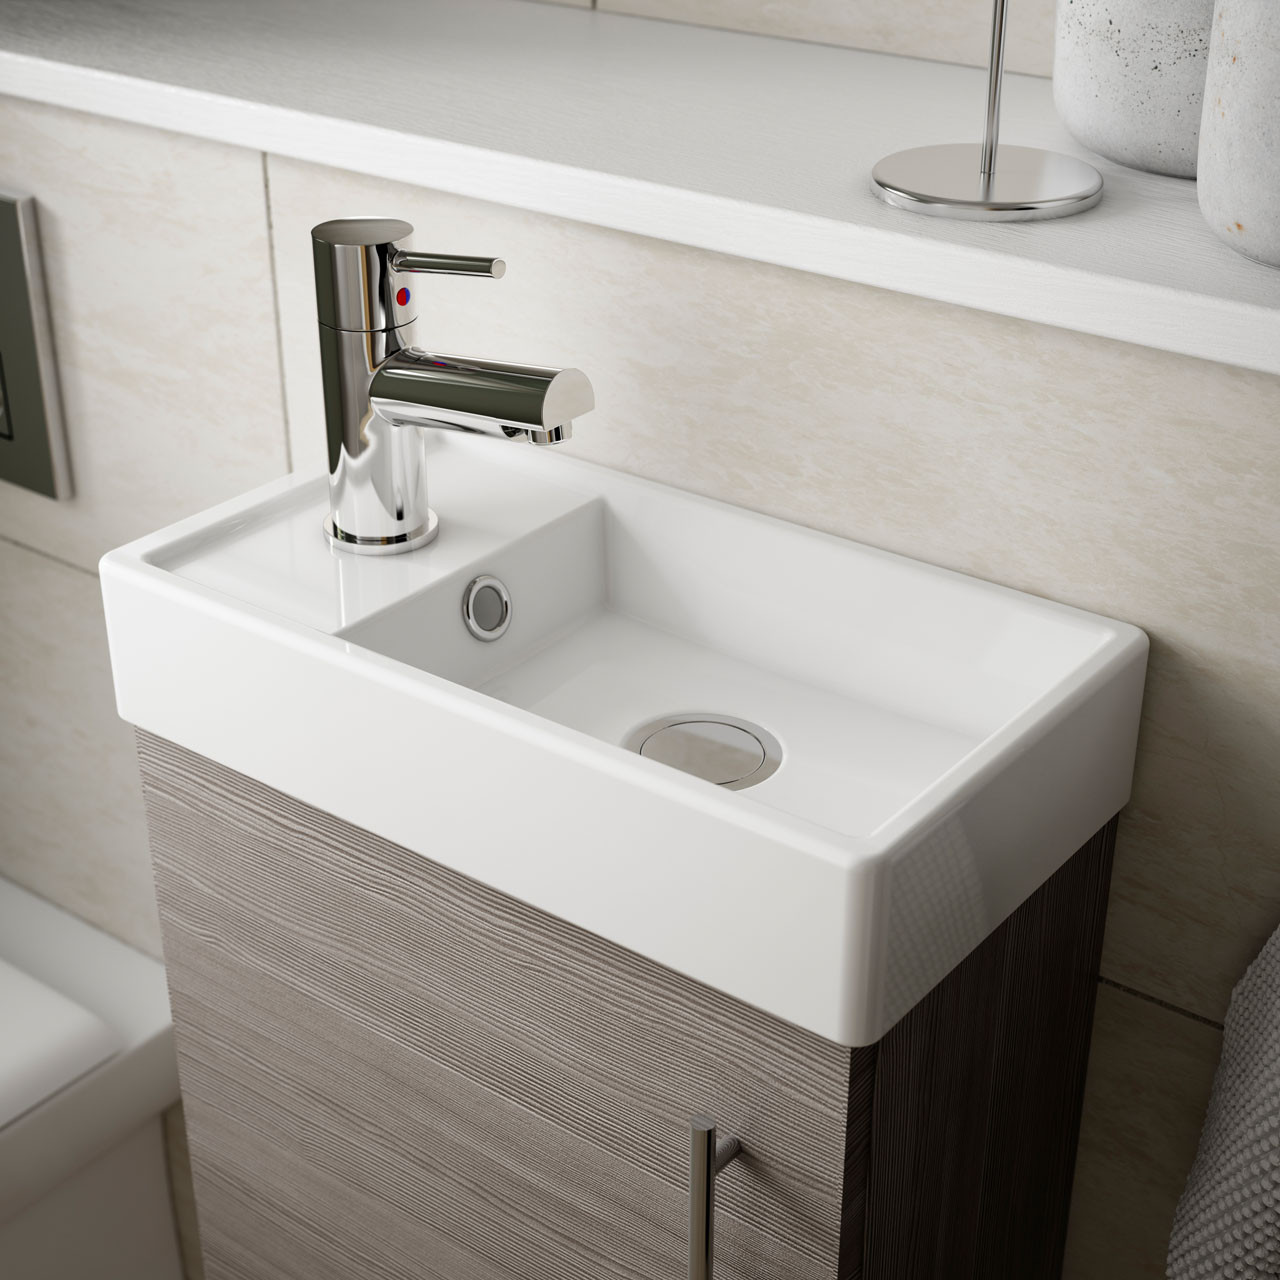 Nuie Valut Driftwood 400mm Single Door Vanity Unit and Compact Basin - MIN001